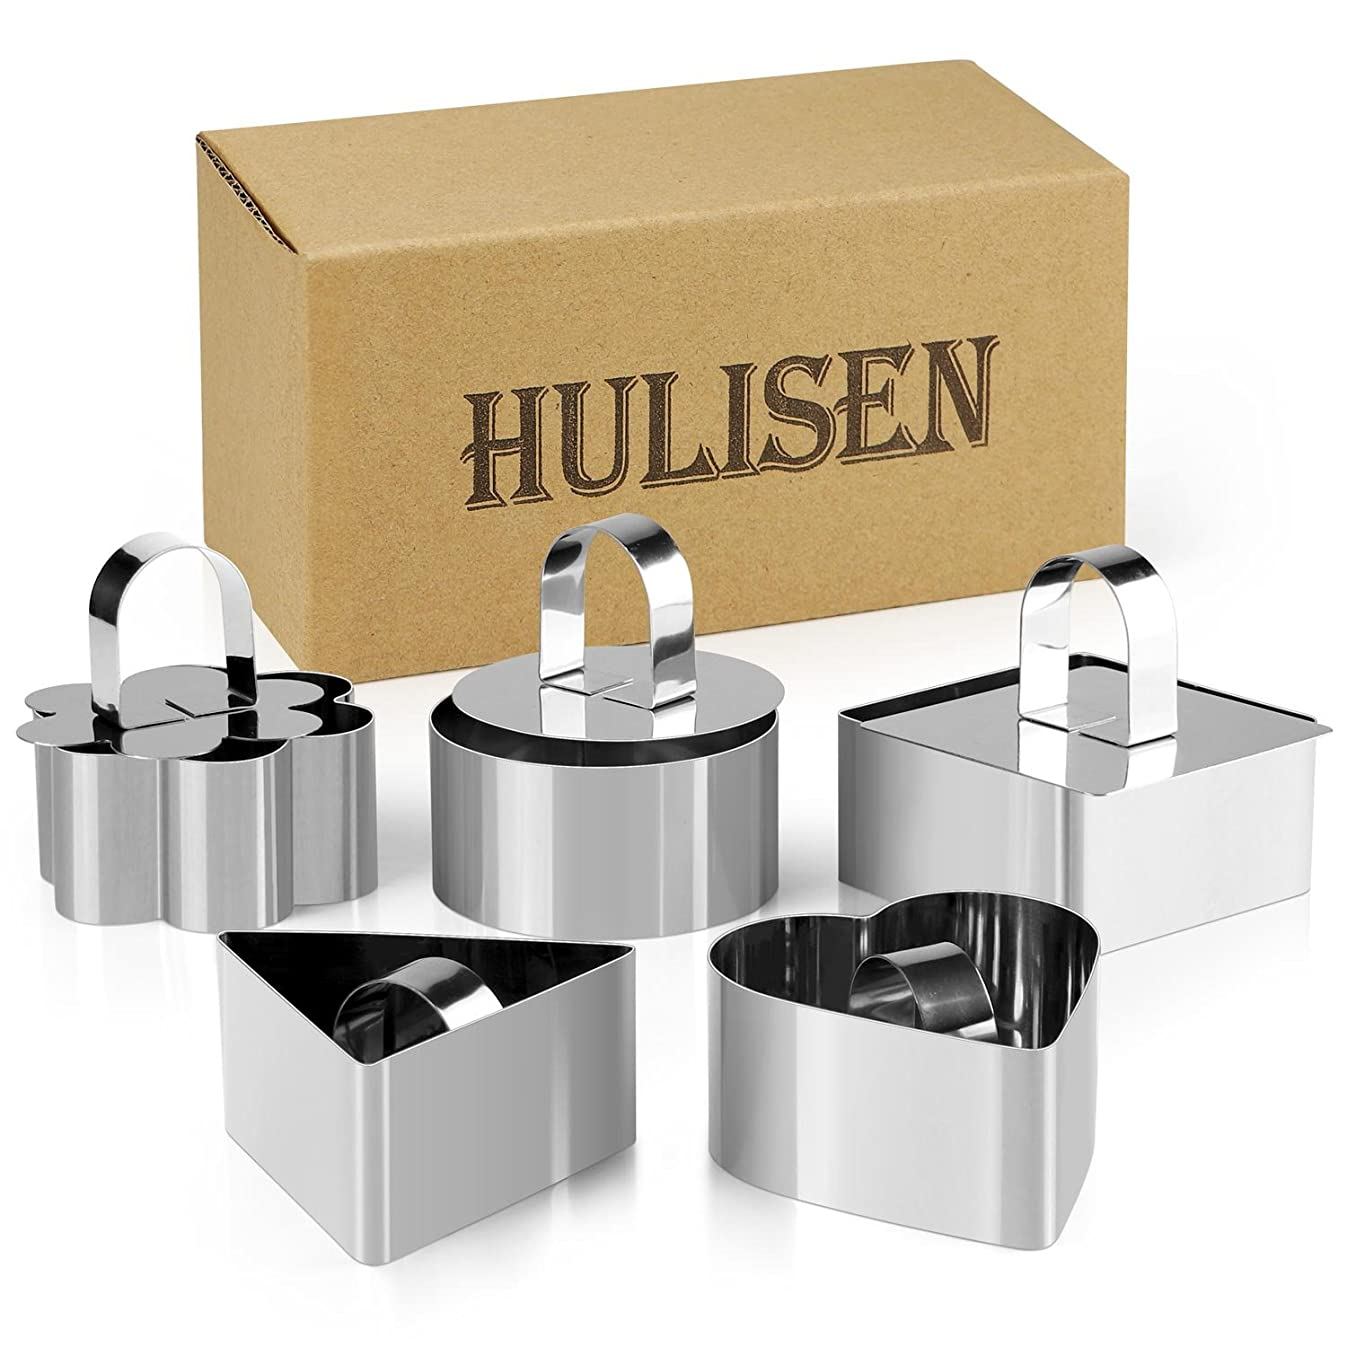 10 Pcs/Set Stainless Steel Cake Ring, HULISEN 3 x 3 inch Square Dessert Mousse Mold with Pusher & Lifter Cooking Rings